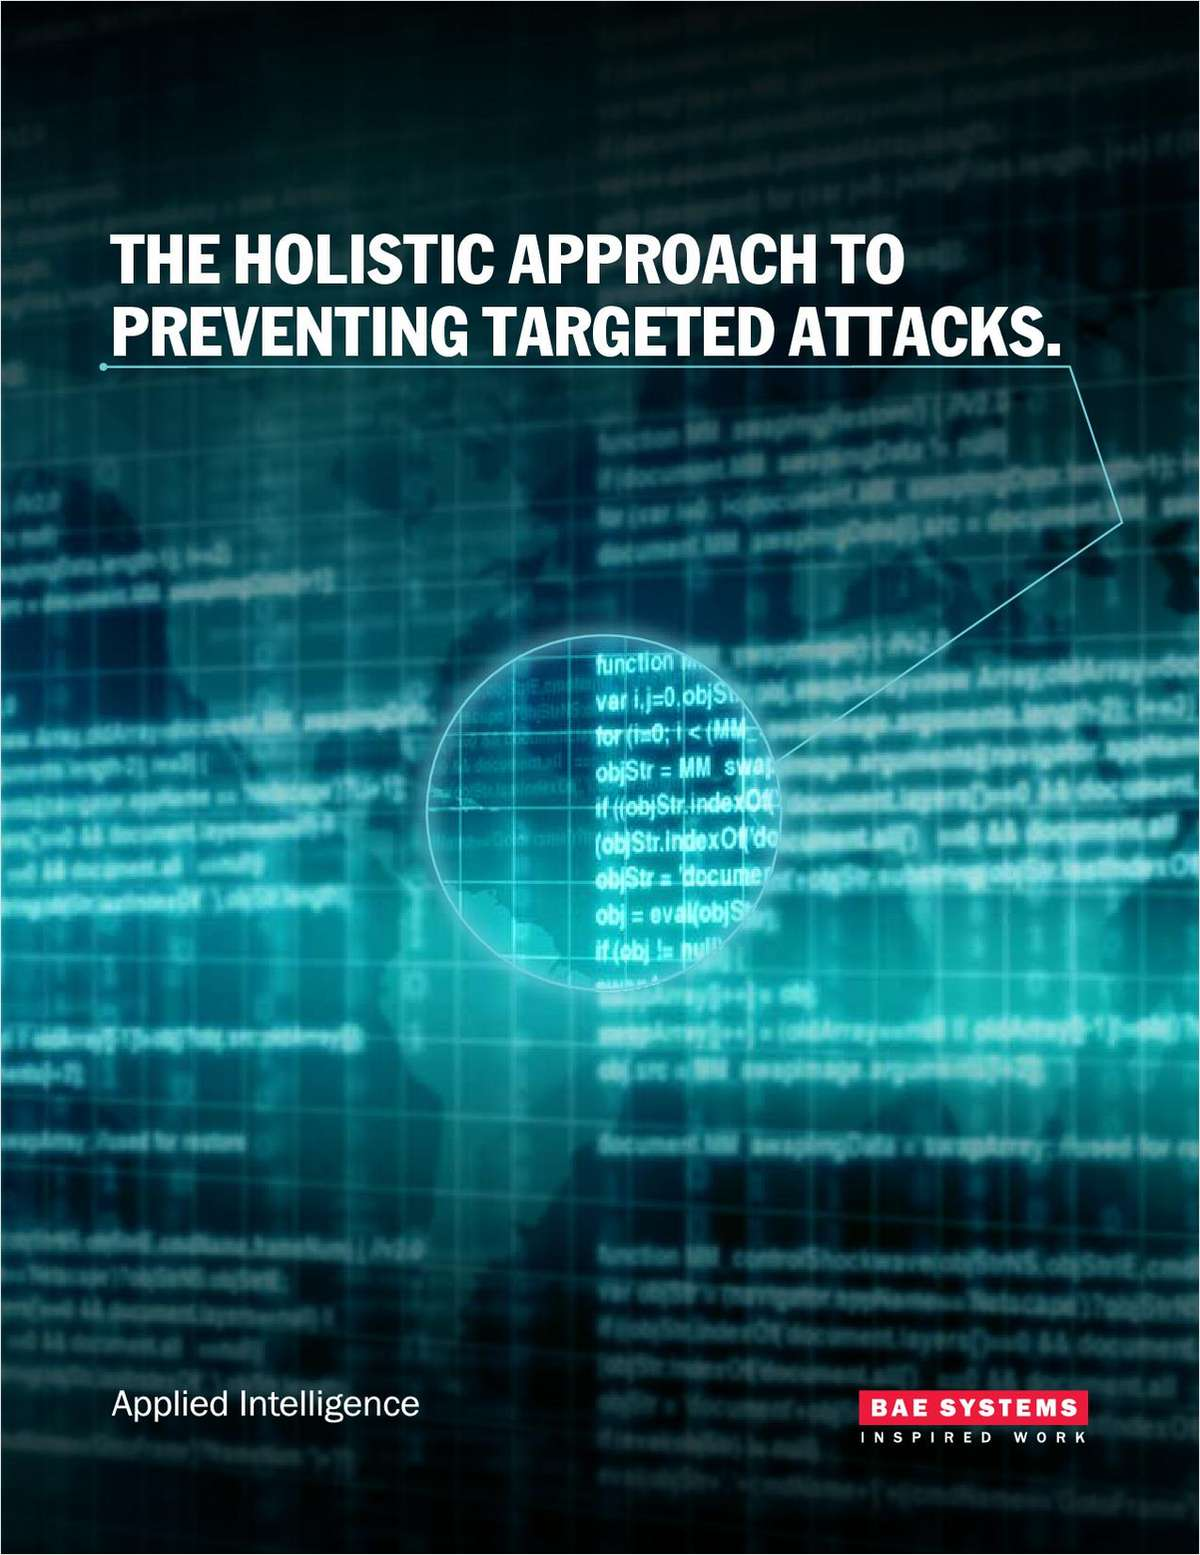 The Holistic Approach to Targeted Attack Prevention